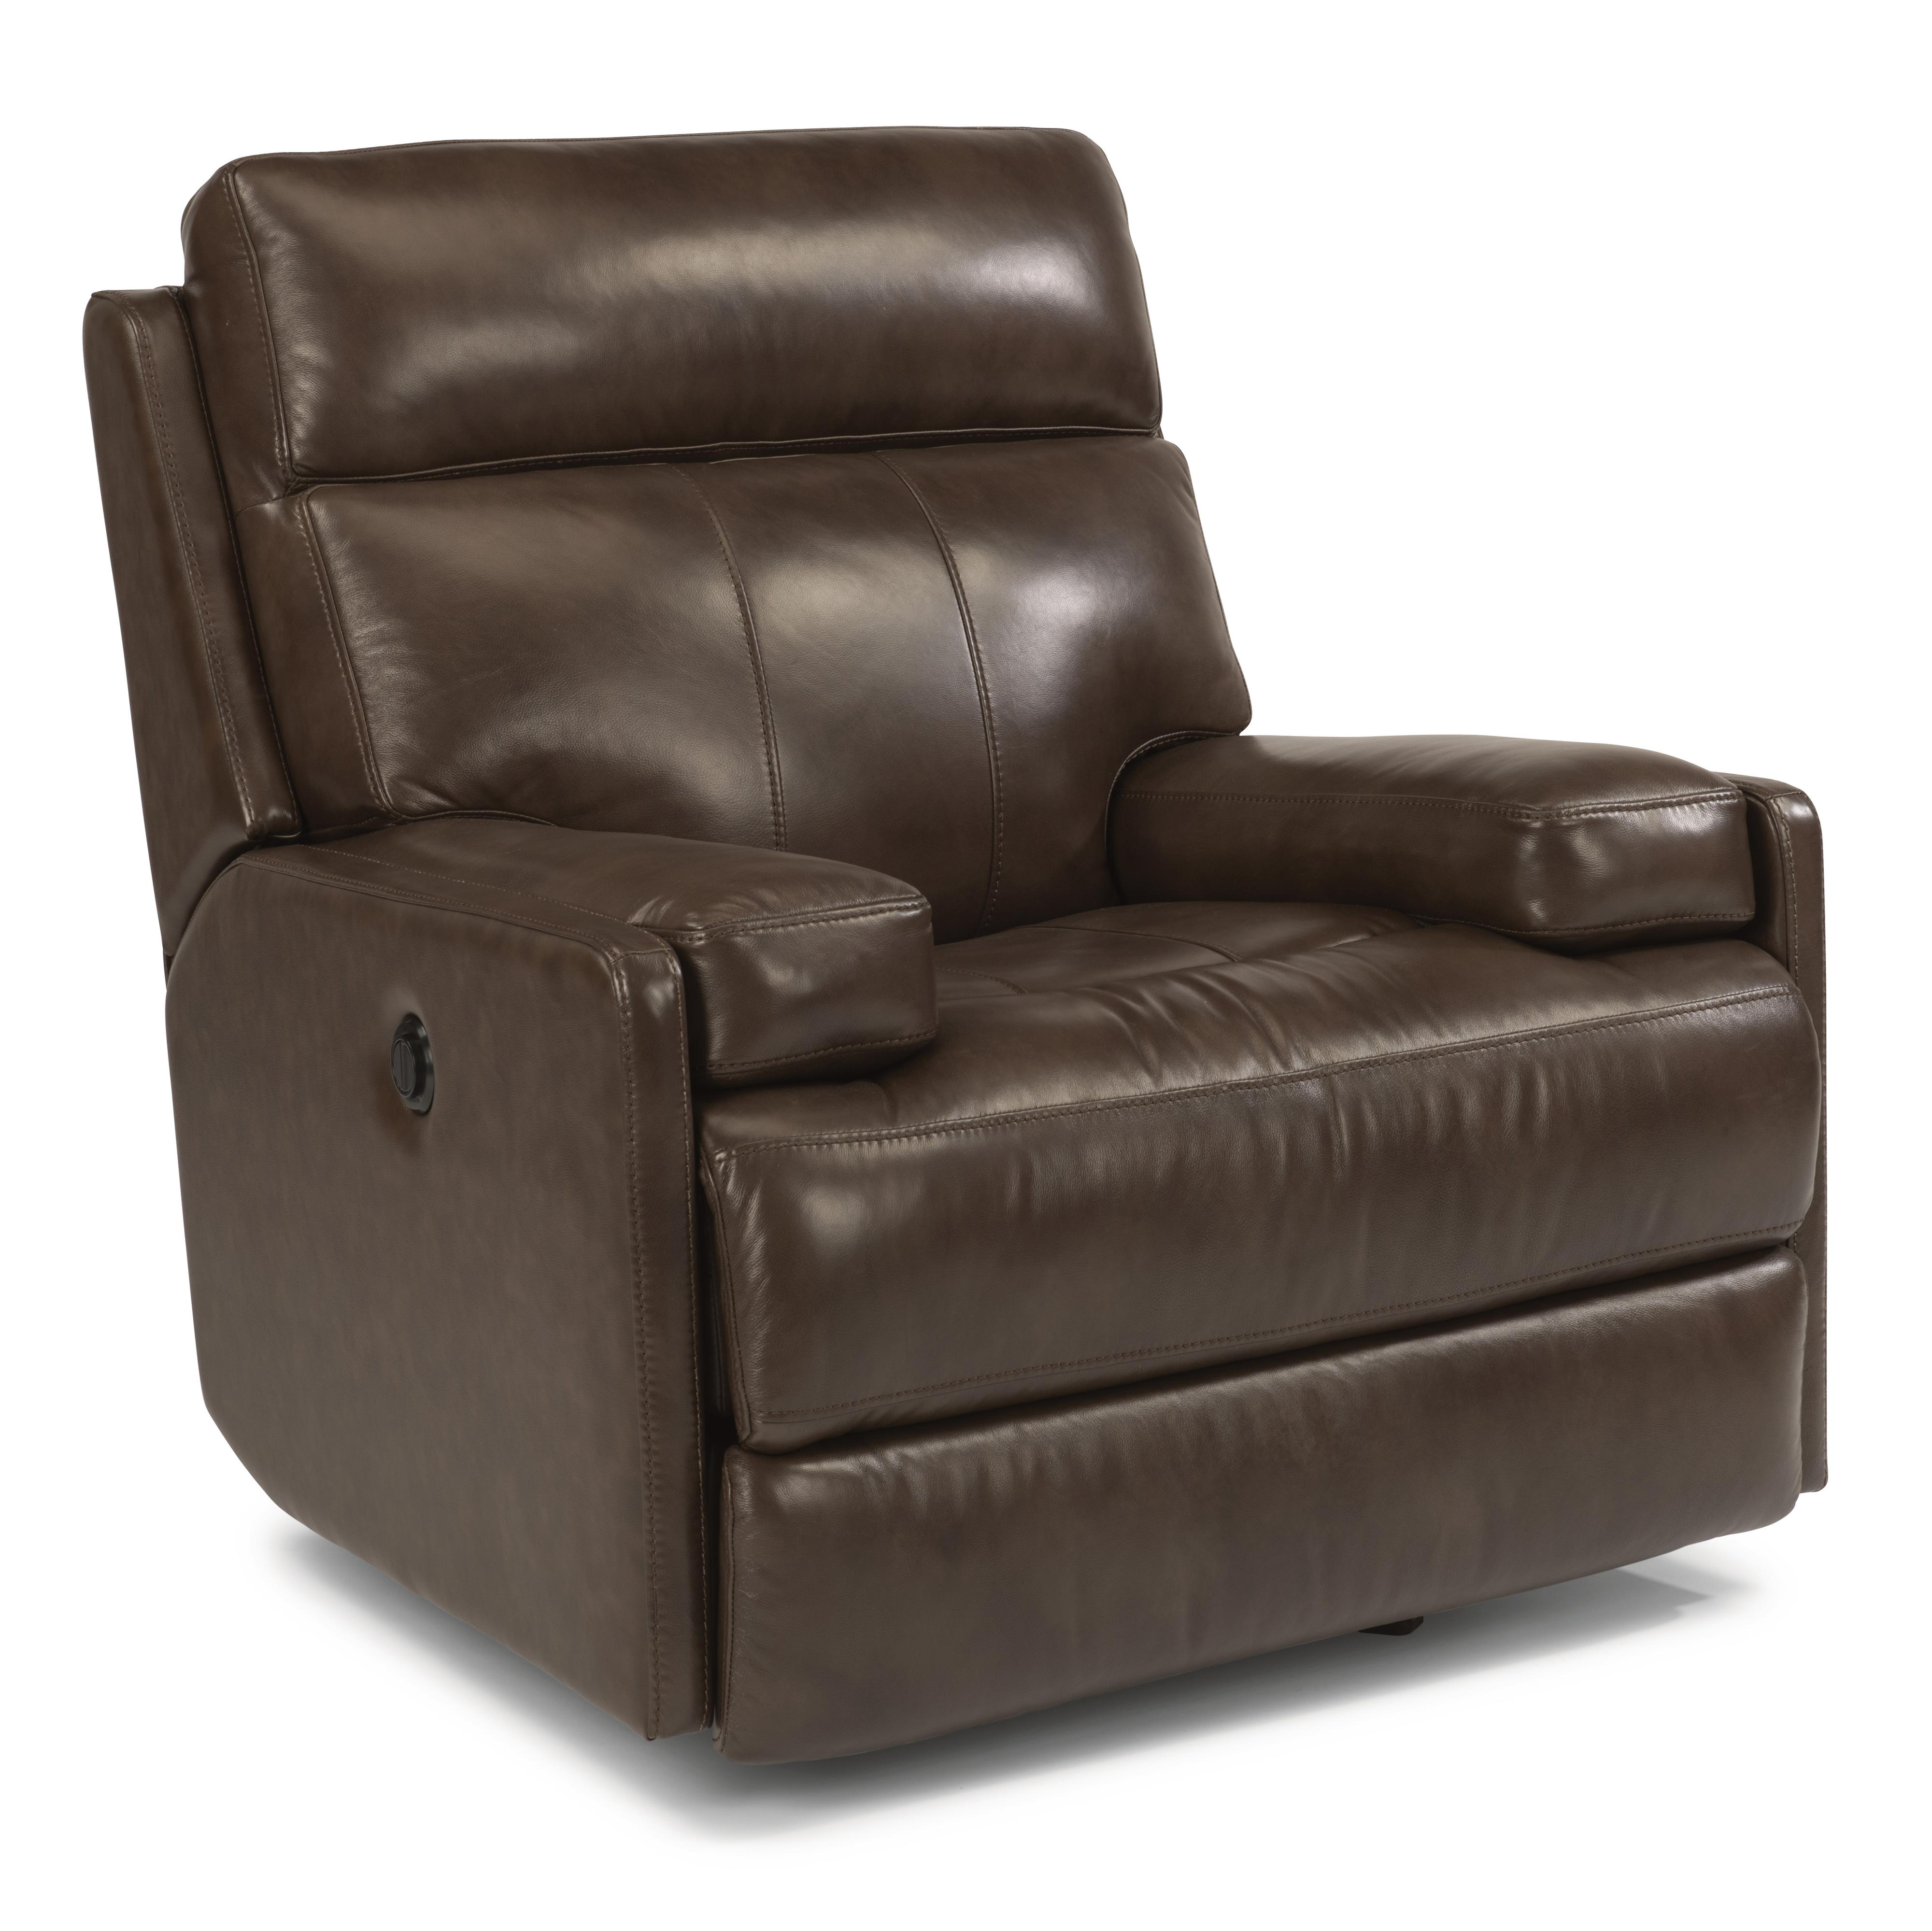 Flexsteel Latitudes-Nathan Glider Recliner with Power - Item Number: 1437-54P-660-74